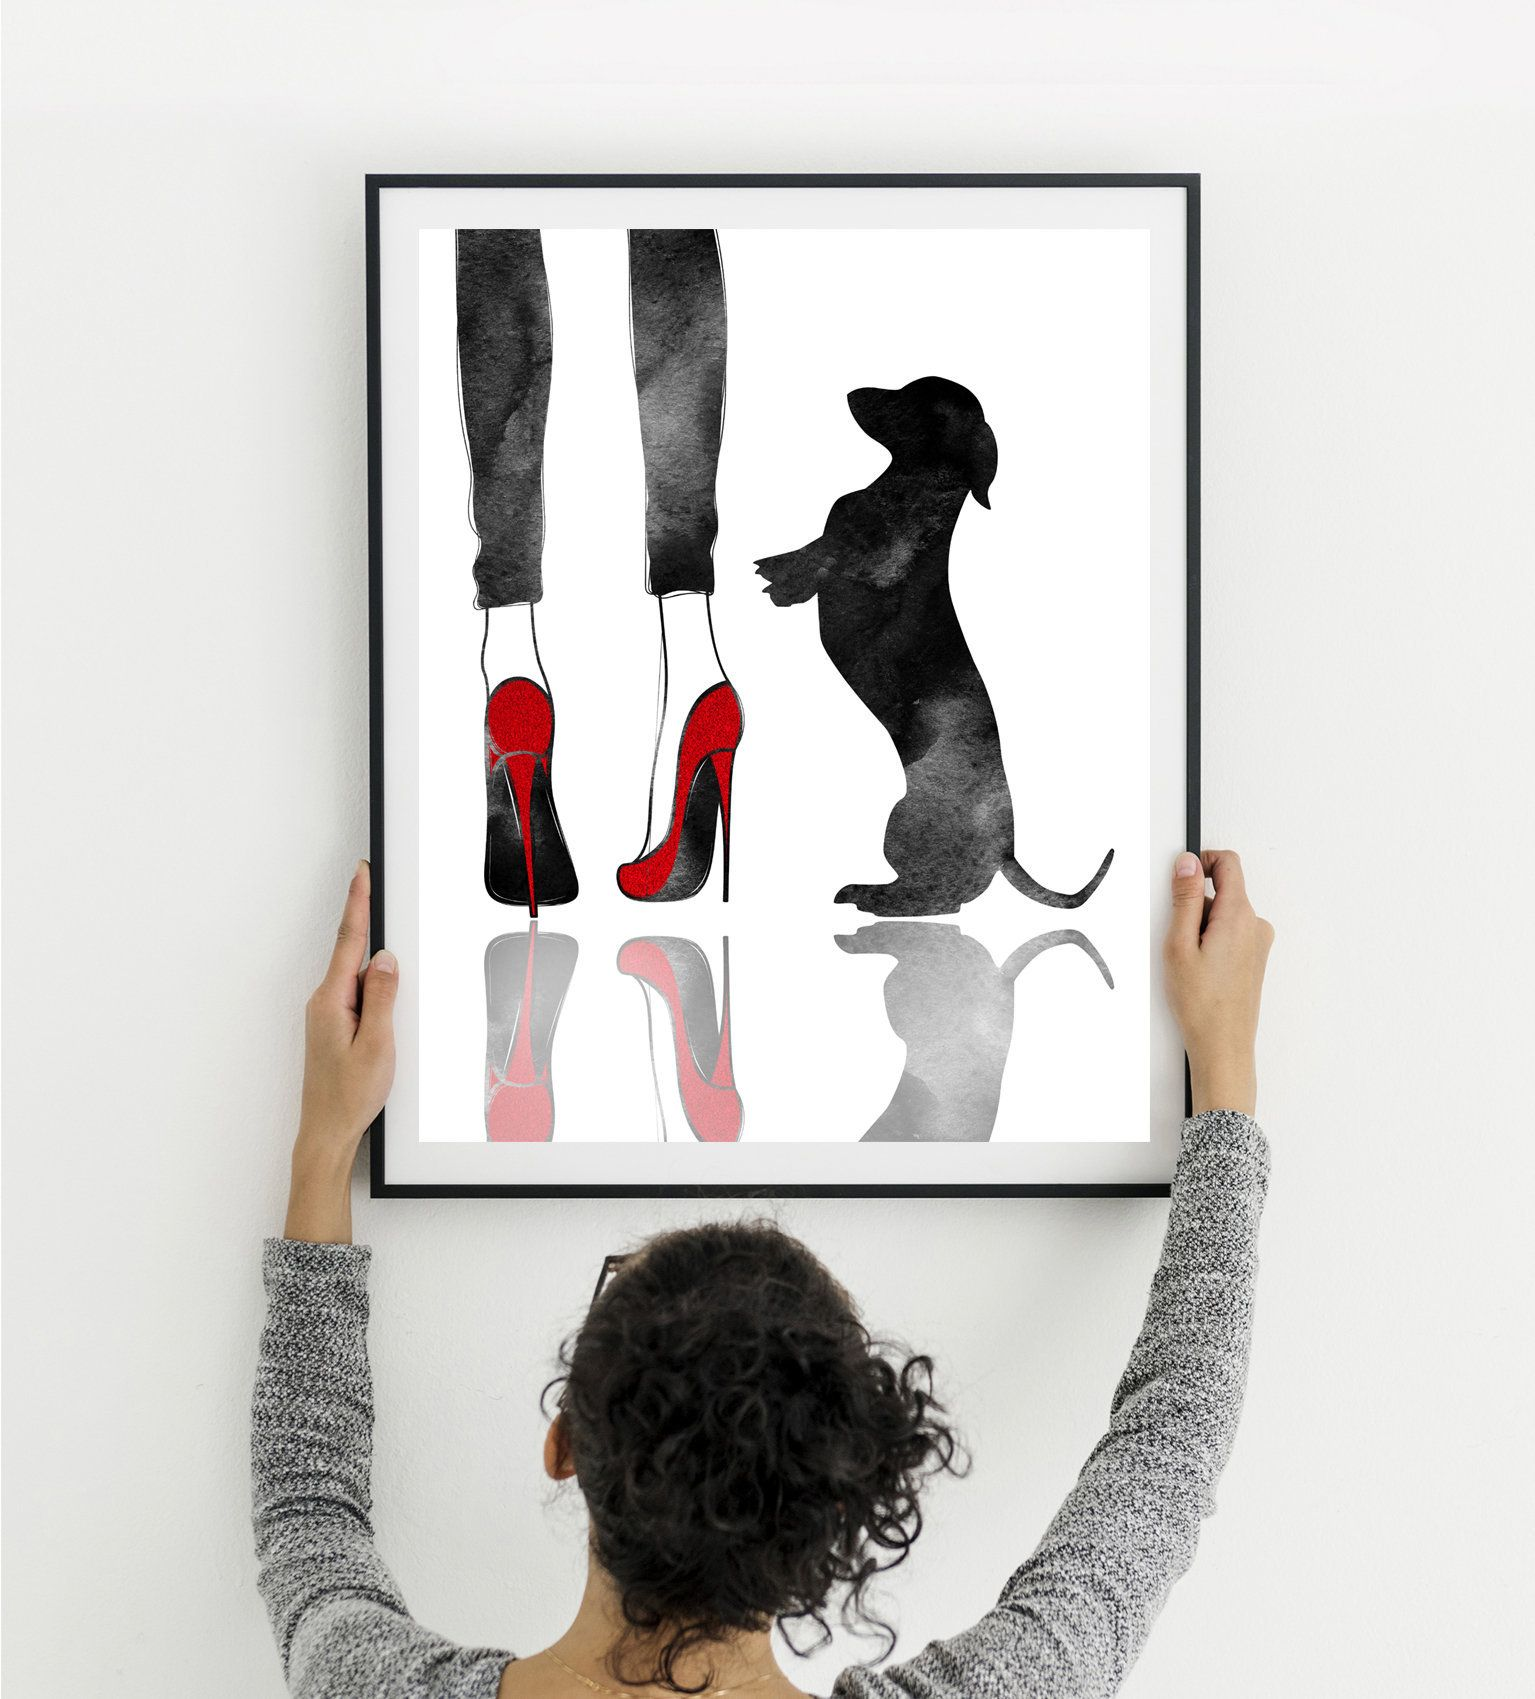 Dachshund Wall Art Woman And Dog Print High Heels Print Etsy In 2020 Dachshund Wall Art Fashion Art Prints Dog Wall Art